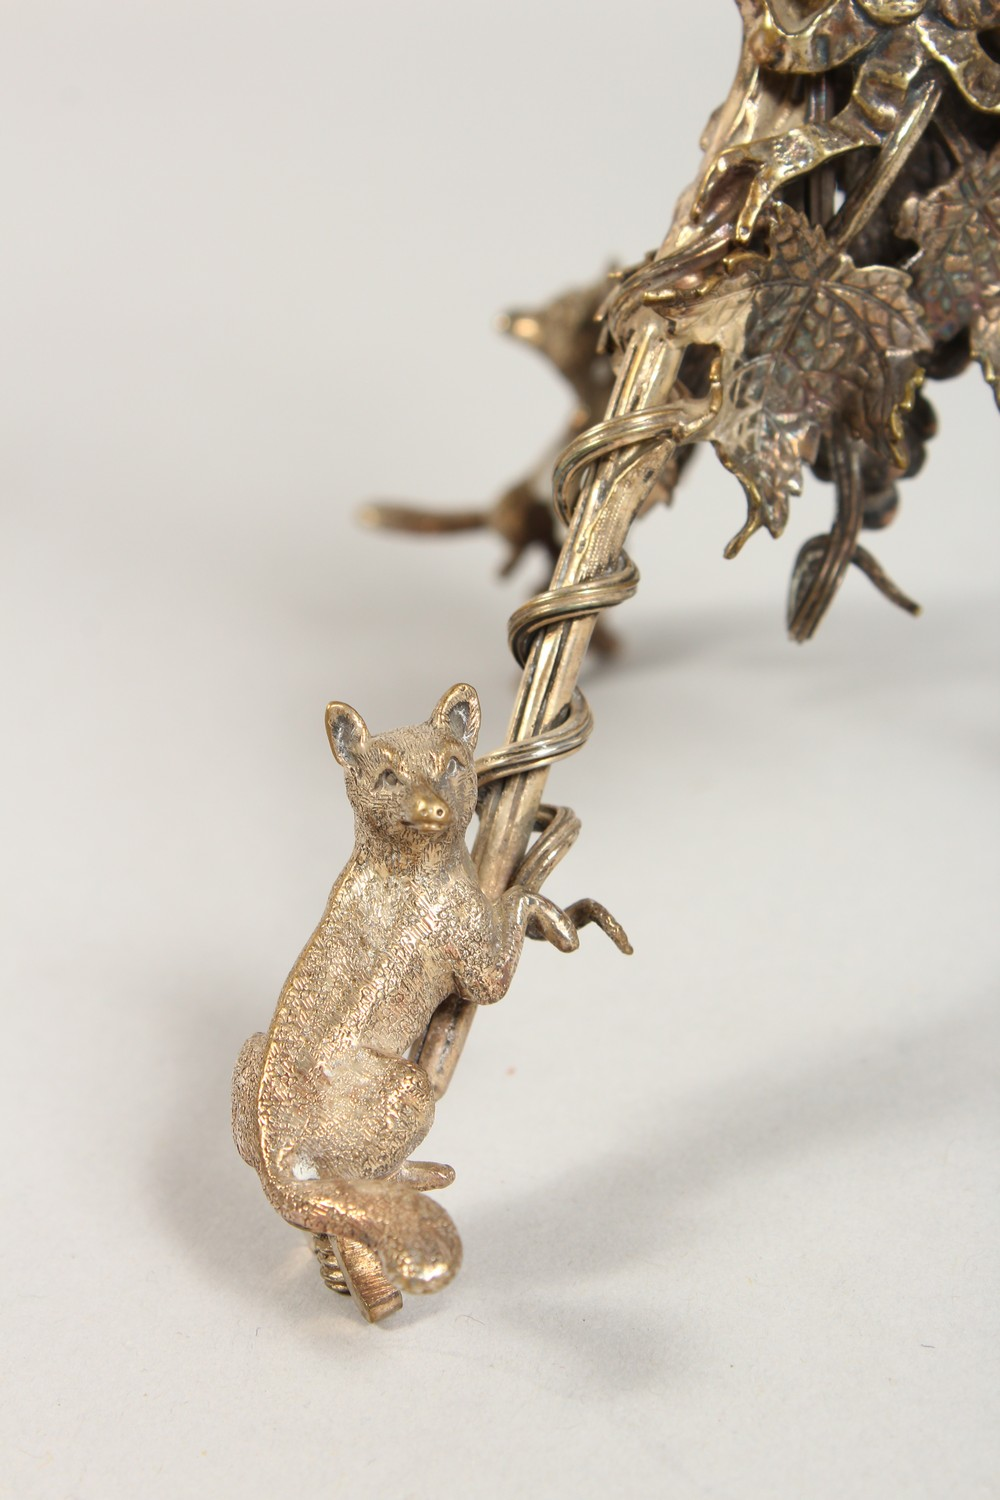 Lot 2052 - A GOOD PAIR OF CAST, PLATED STANDS, modelled as foxes climbing up grapevines. 5.5ins high.